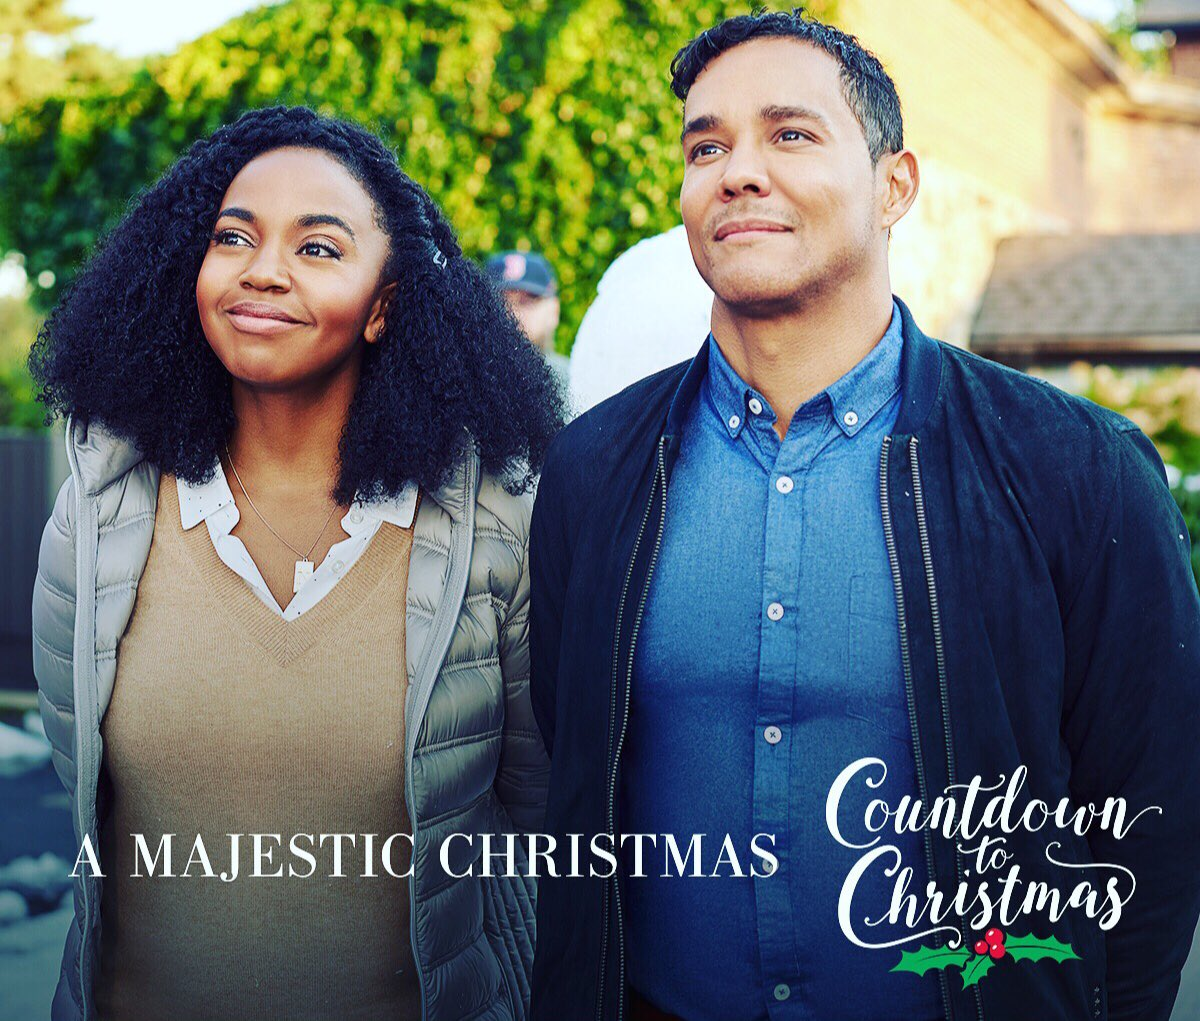 A Majestic Christmas.Christian Vincent On Twitter Canadian Premiere A